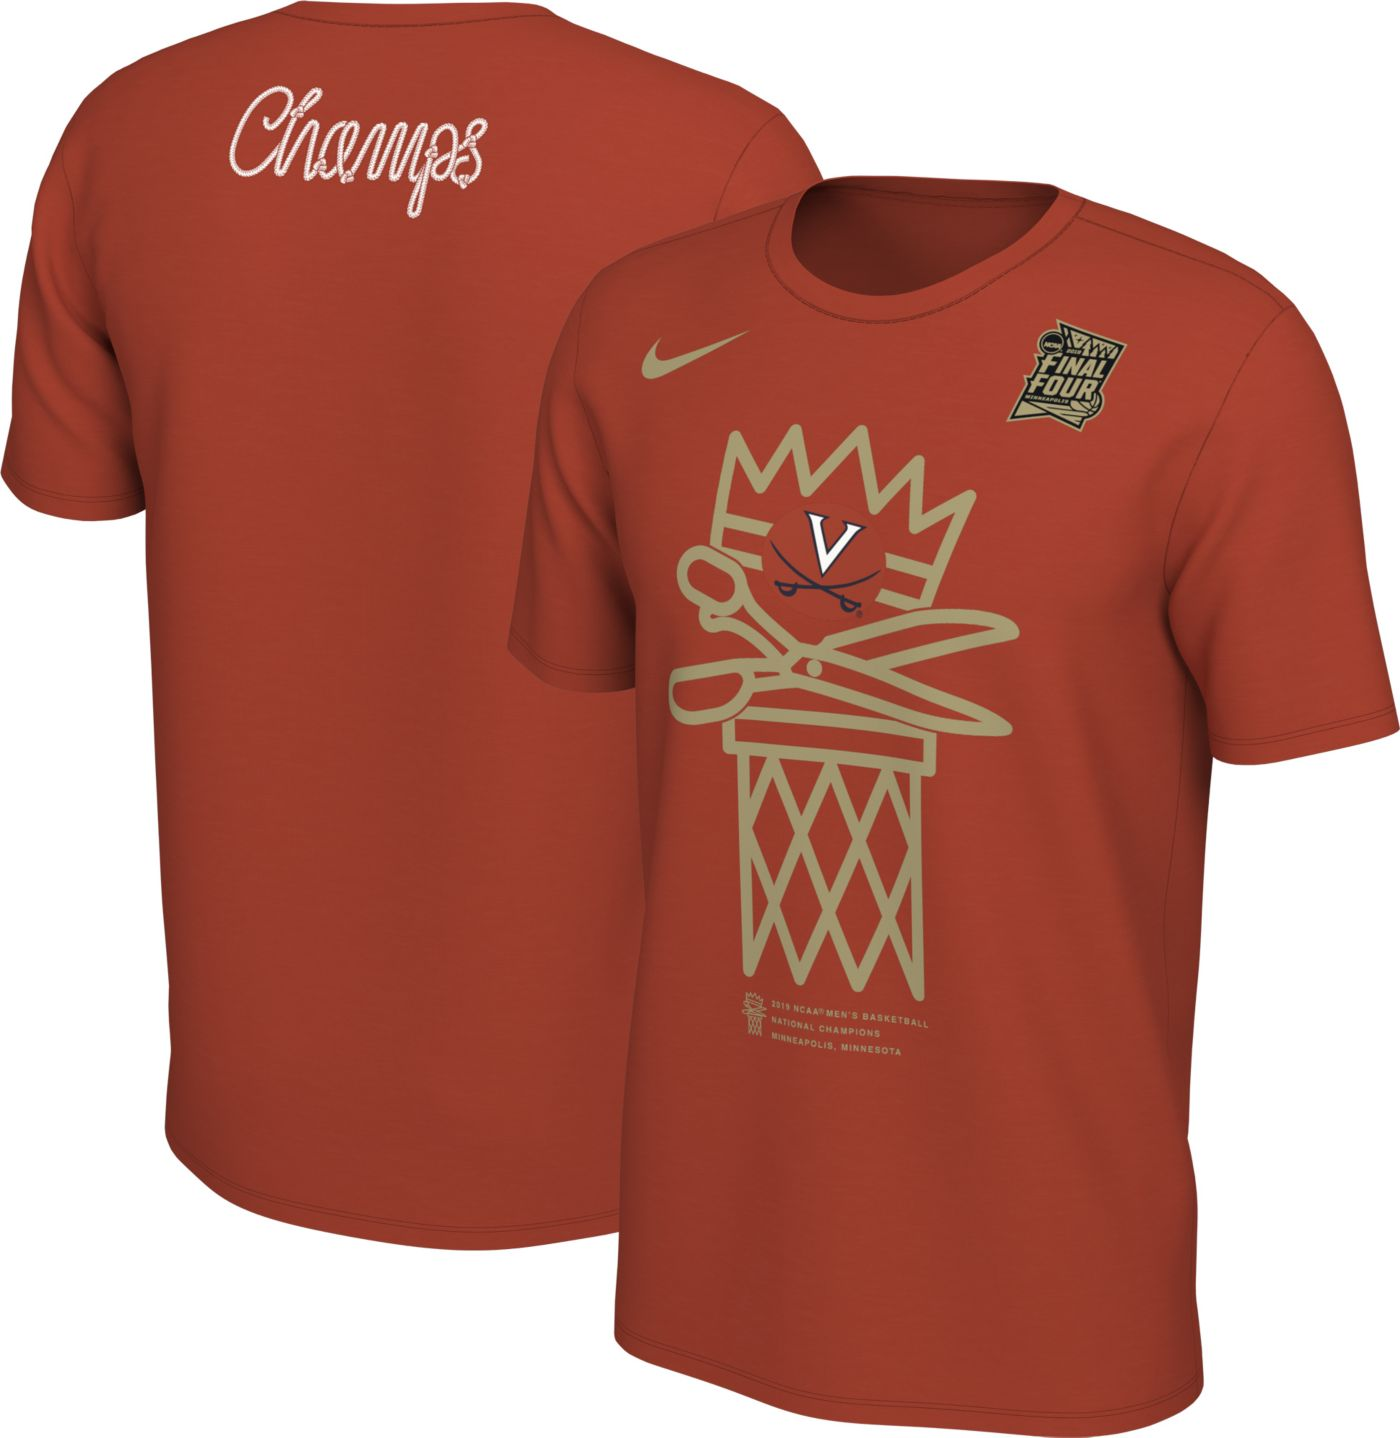 Nike Men's Virginia Cavaliers 2019 Men's Basketball National Champions Scissors T-Shirt